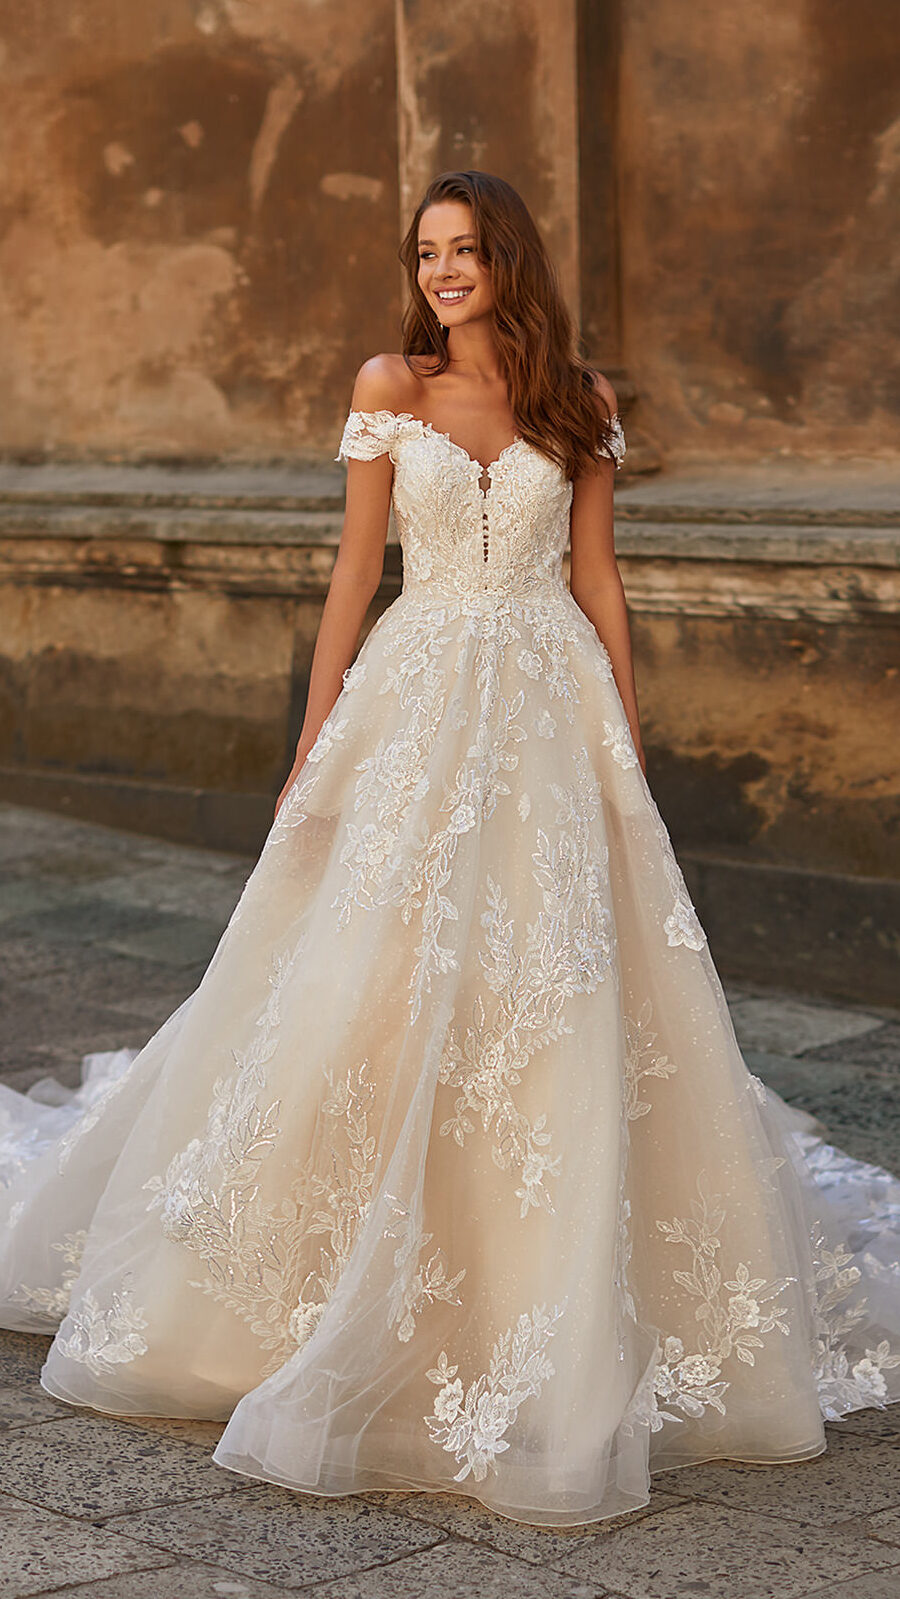 Designer Wedding Dresses by Moonlight Couture 2022 Bridal Collection - H1487